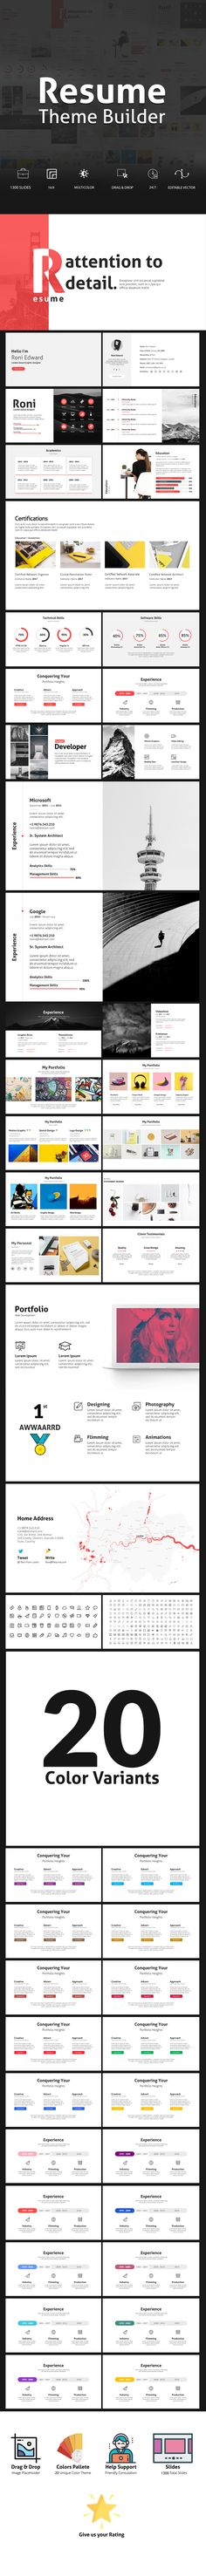 Powerpoint 2016 Templates Powerpoint Animated Templates Free